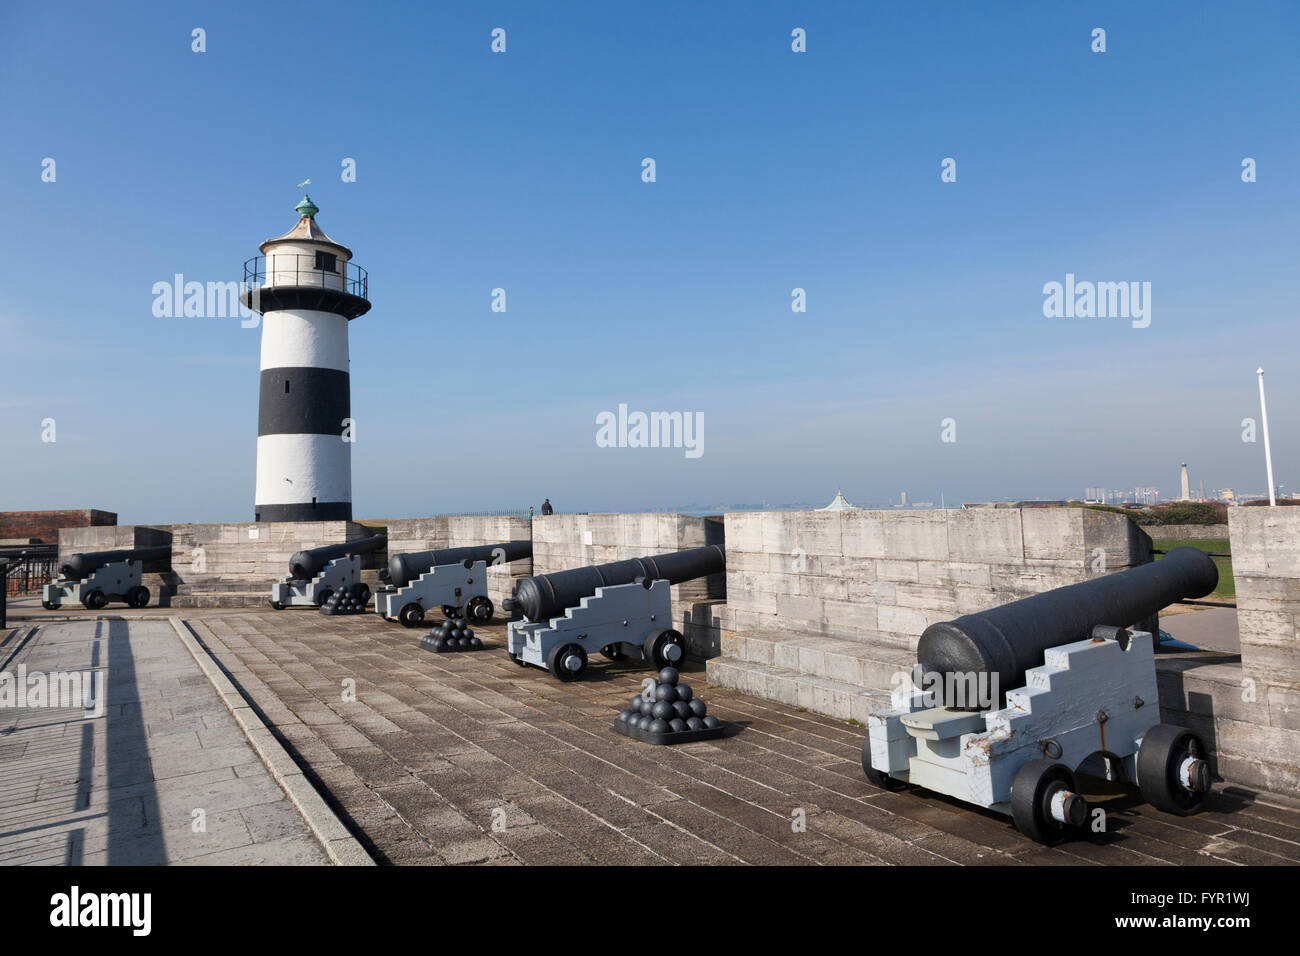 Lighthouse and cannons, Southsea Castle, Southsea, Portsmouth, England, United Kingdom - Stock Image